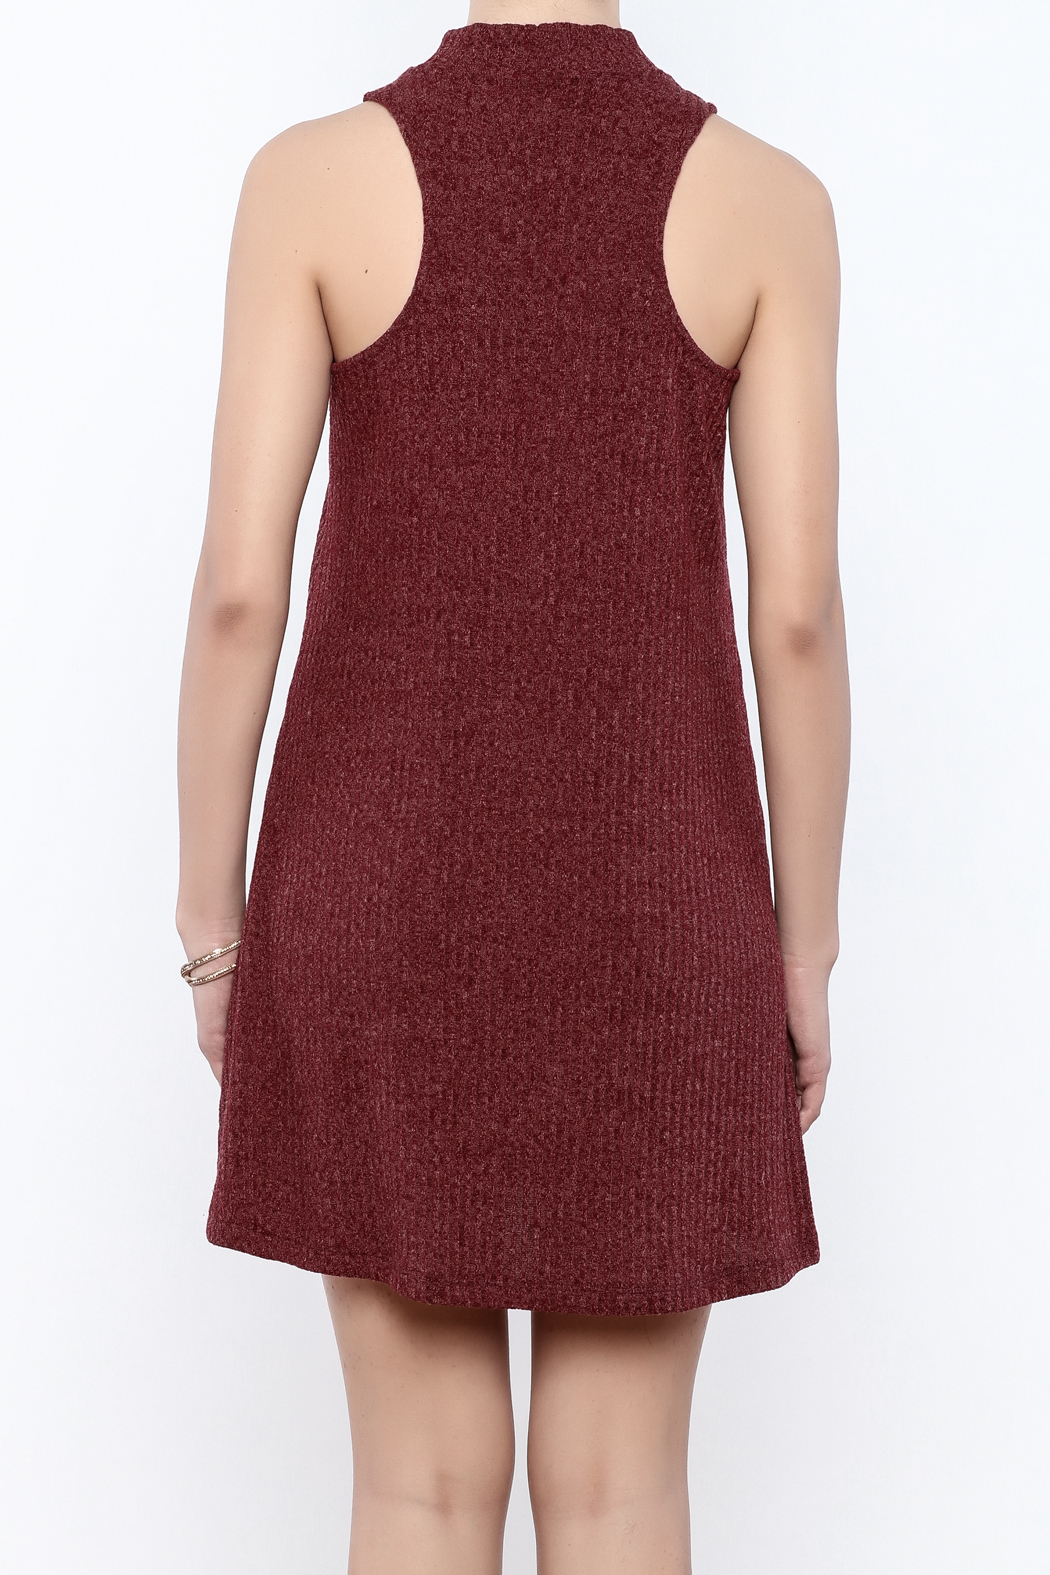 Veronica M Sleeveless Sweater Dress - Back Cropped Image